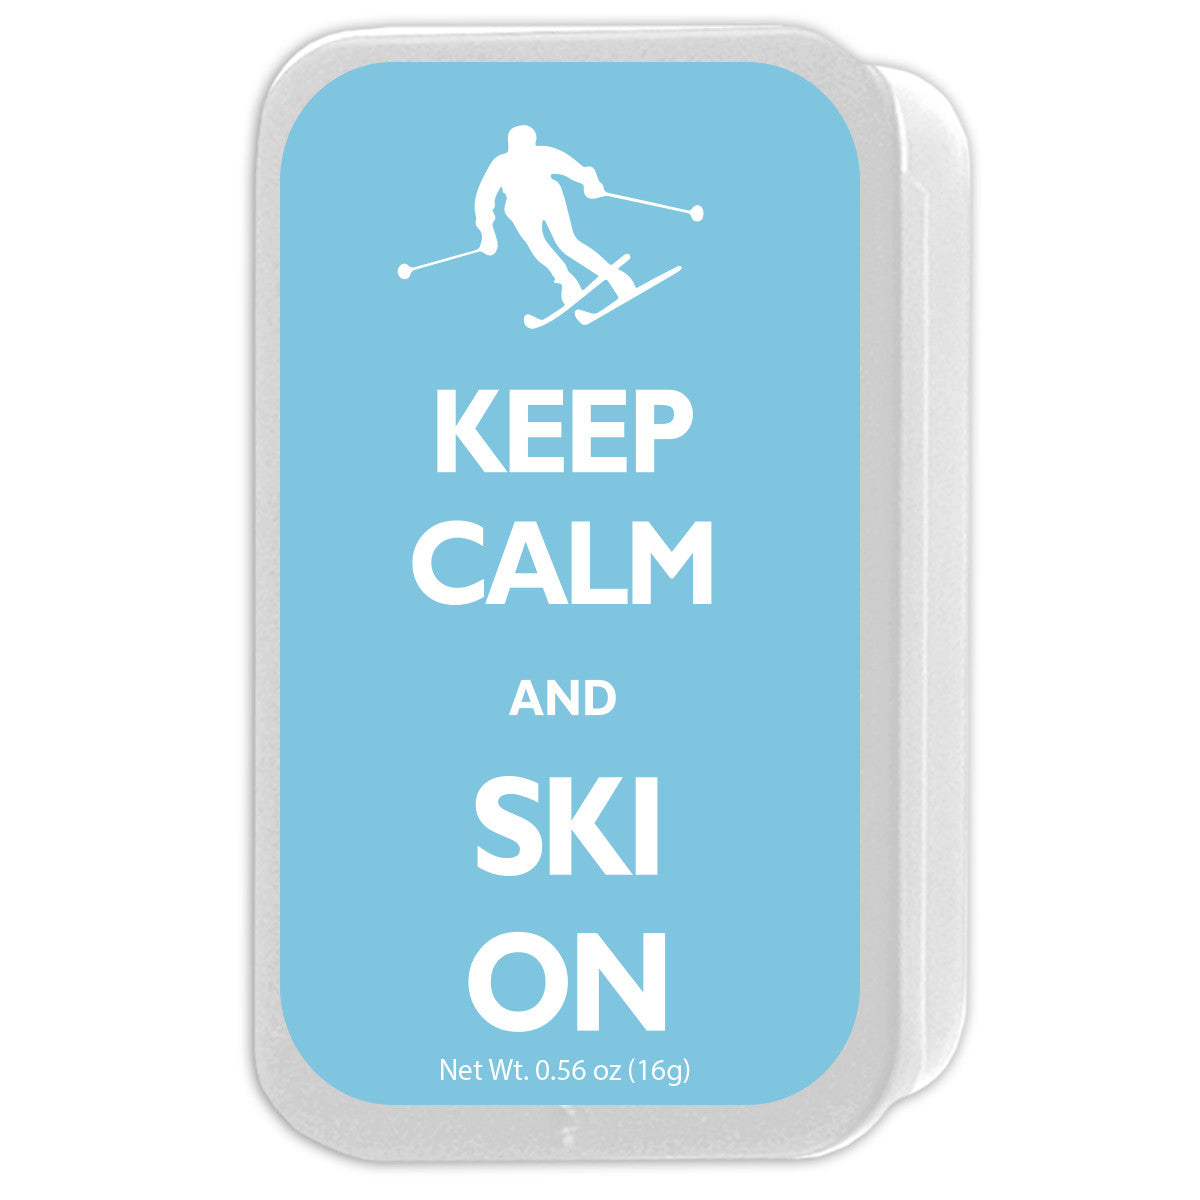 Keep Calm and Ski - 0336S